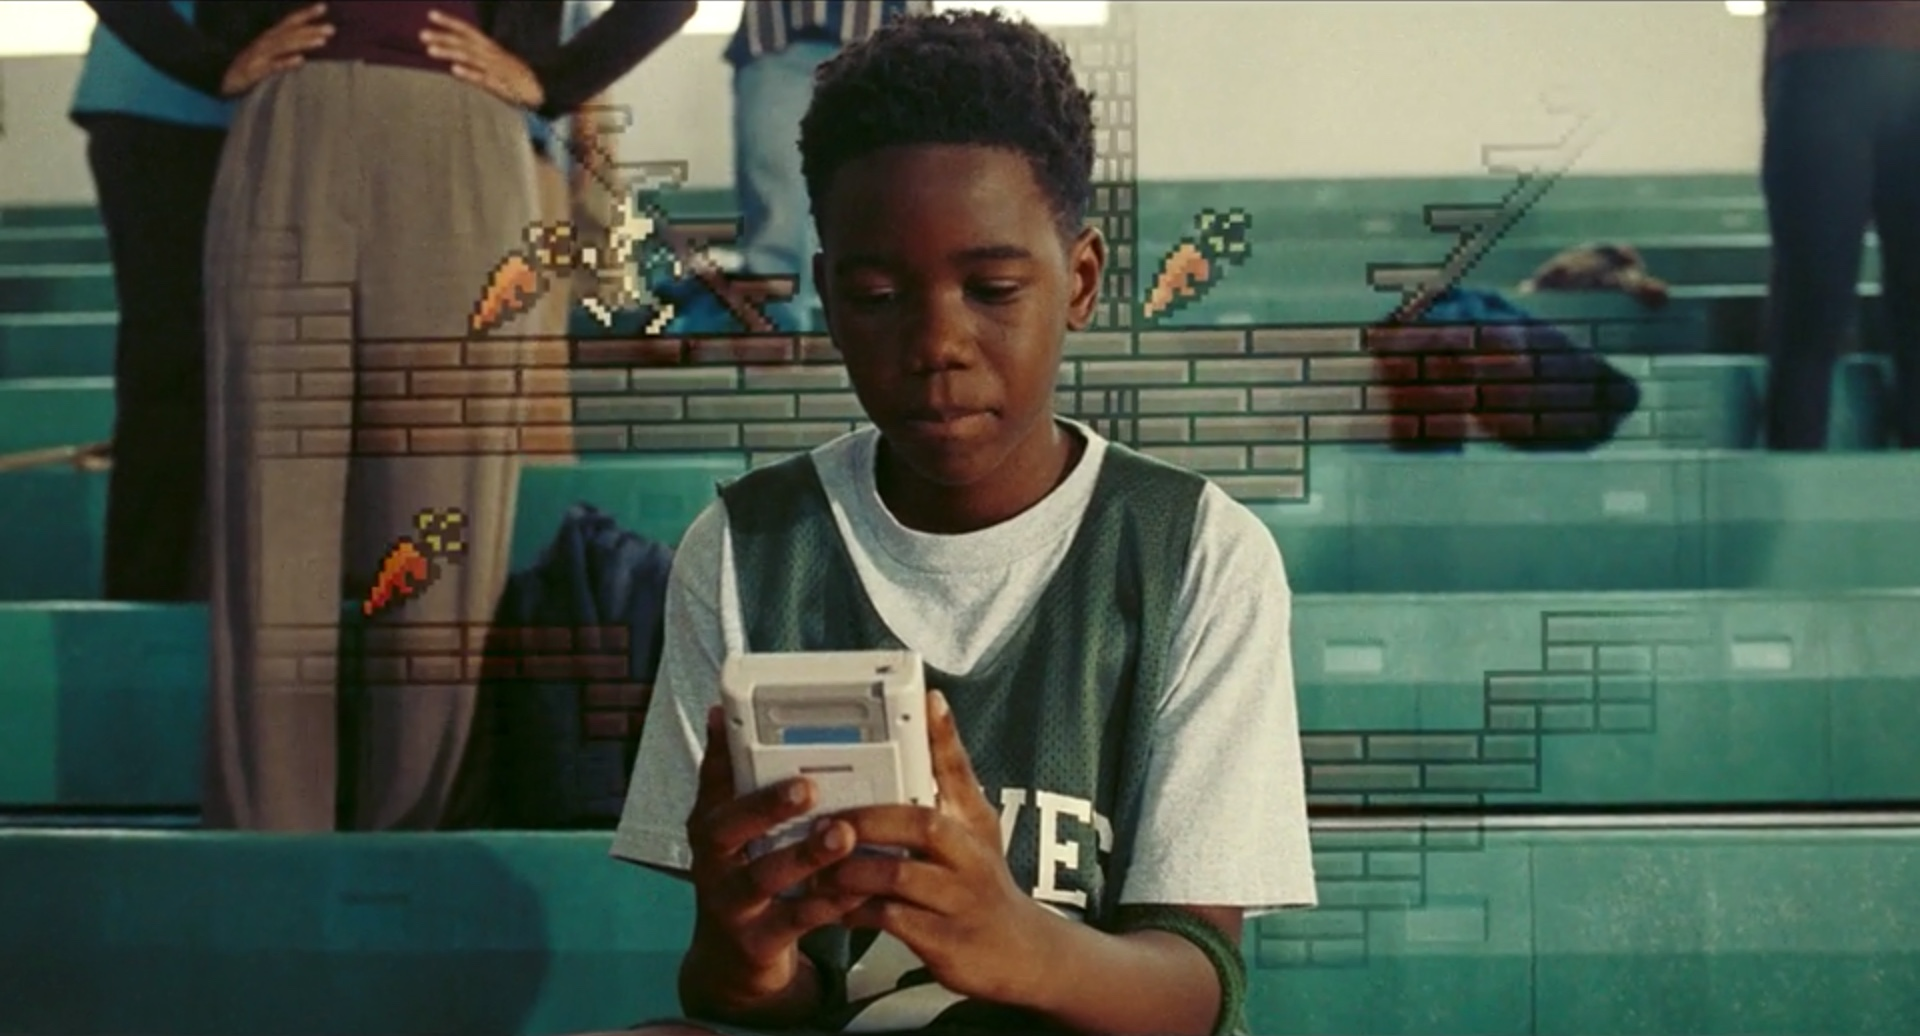 Young LeBron James plays a Game Boy in a still from Space Jam: A New Legacy